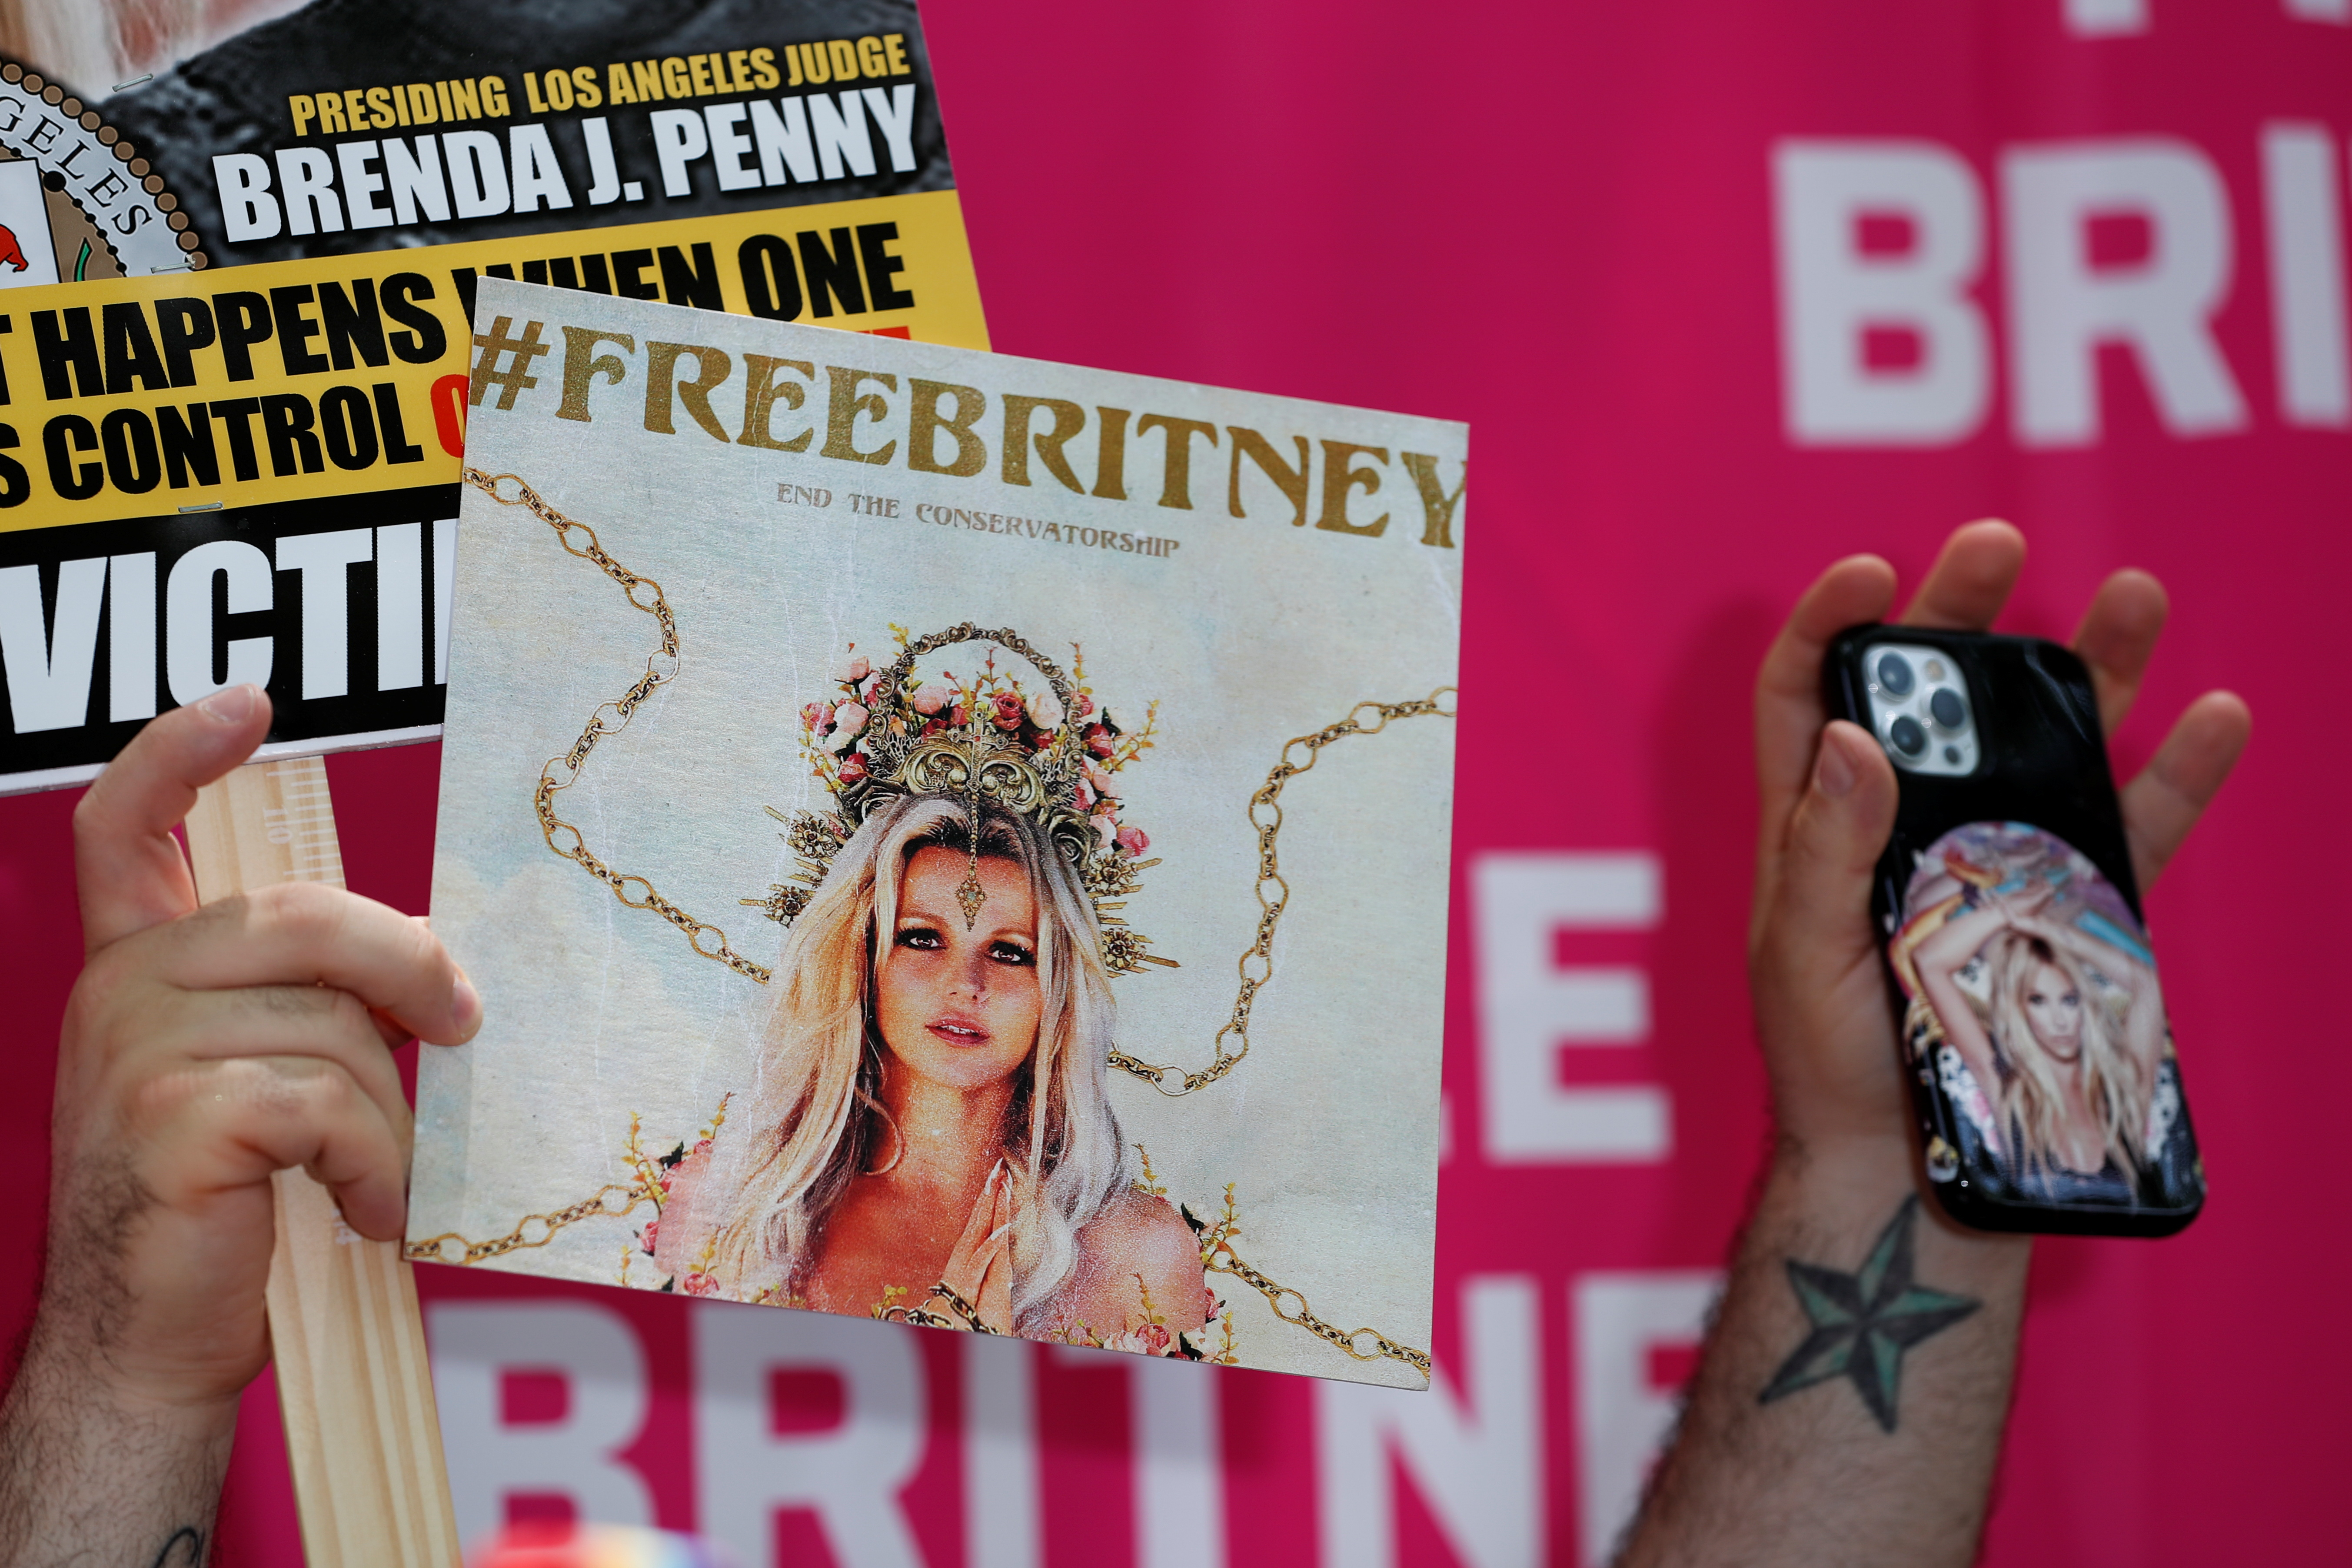 A phone and placards are held during a protest in support of pop star Britney Spears on the day of a conservatorship case hearing at Stanley Mosk Courthouse in Los Angeles, California, U.S., July 14, 2021.  REUTERS/Mario Anzuoni/File Photo